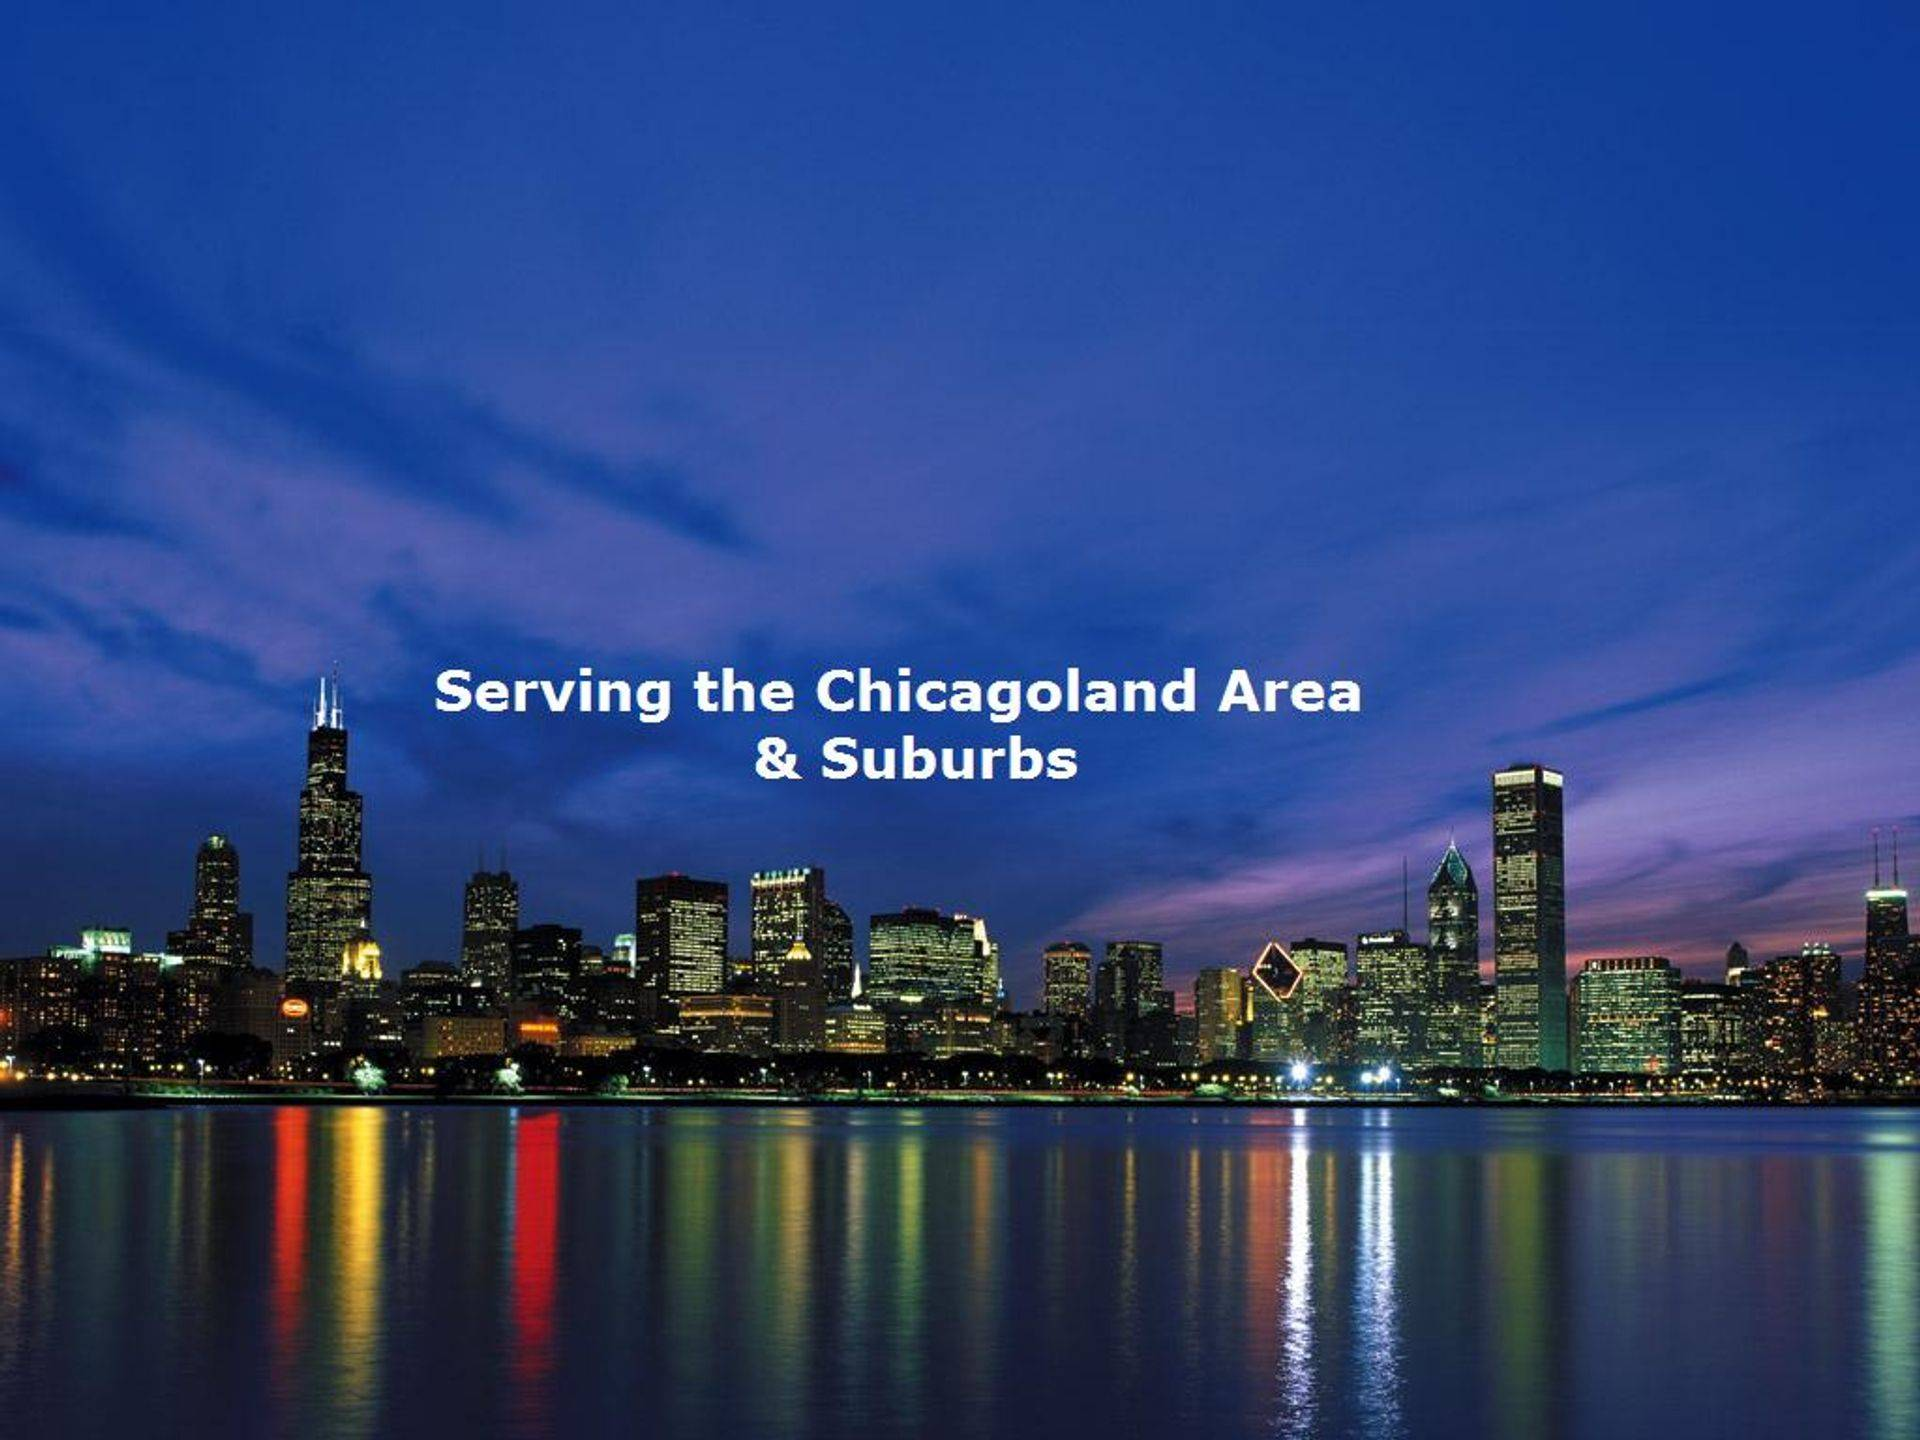 Serving the Chicagoland Area and Surrounding Suburbs